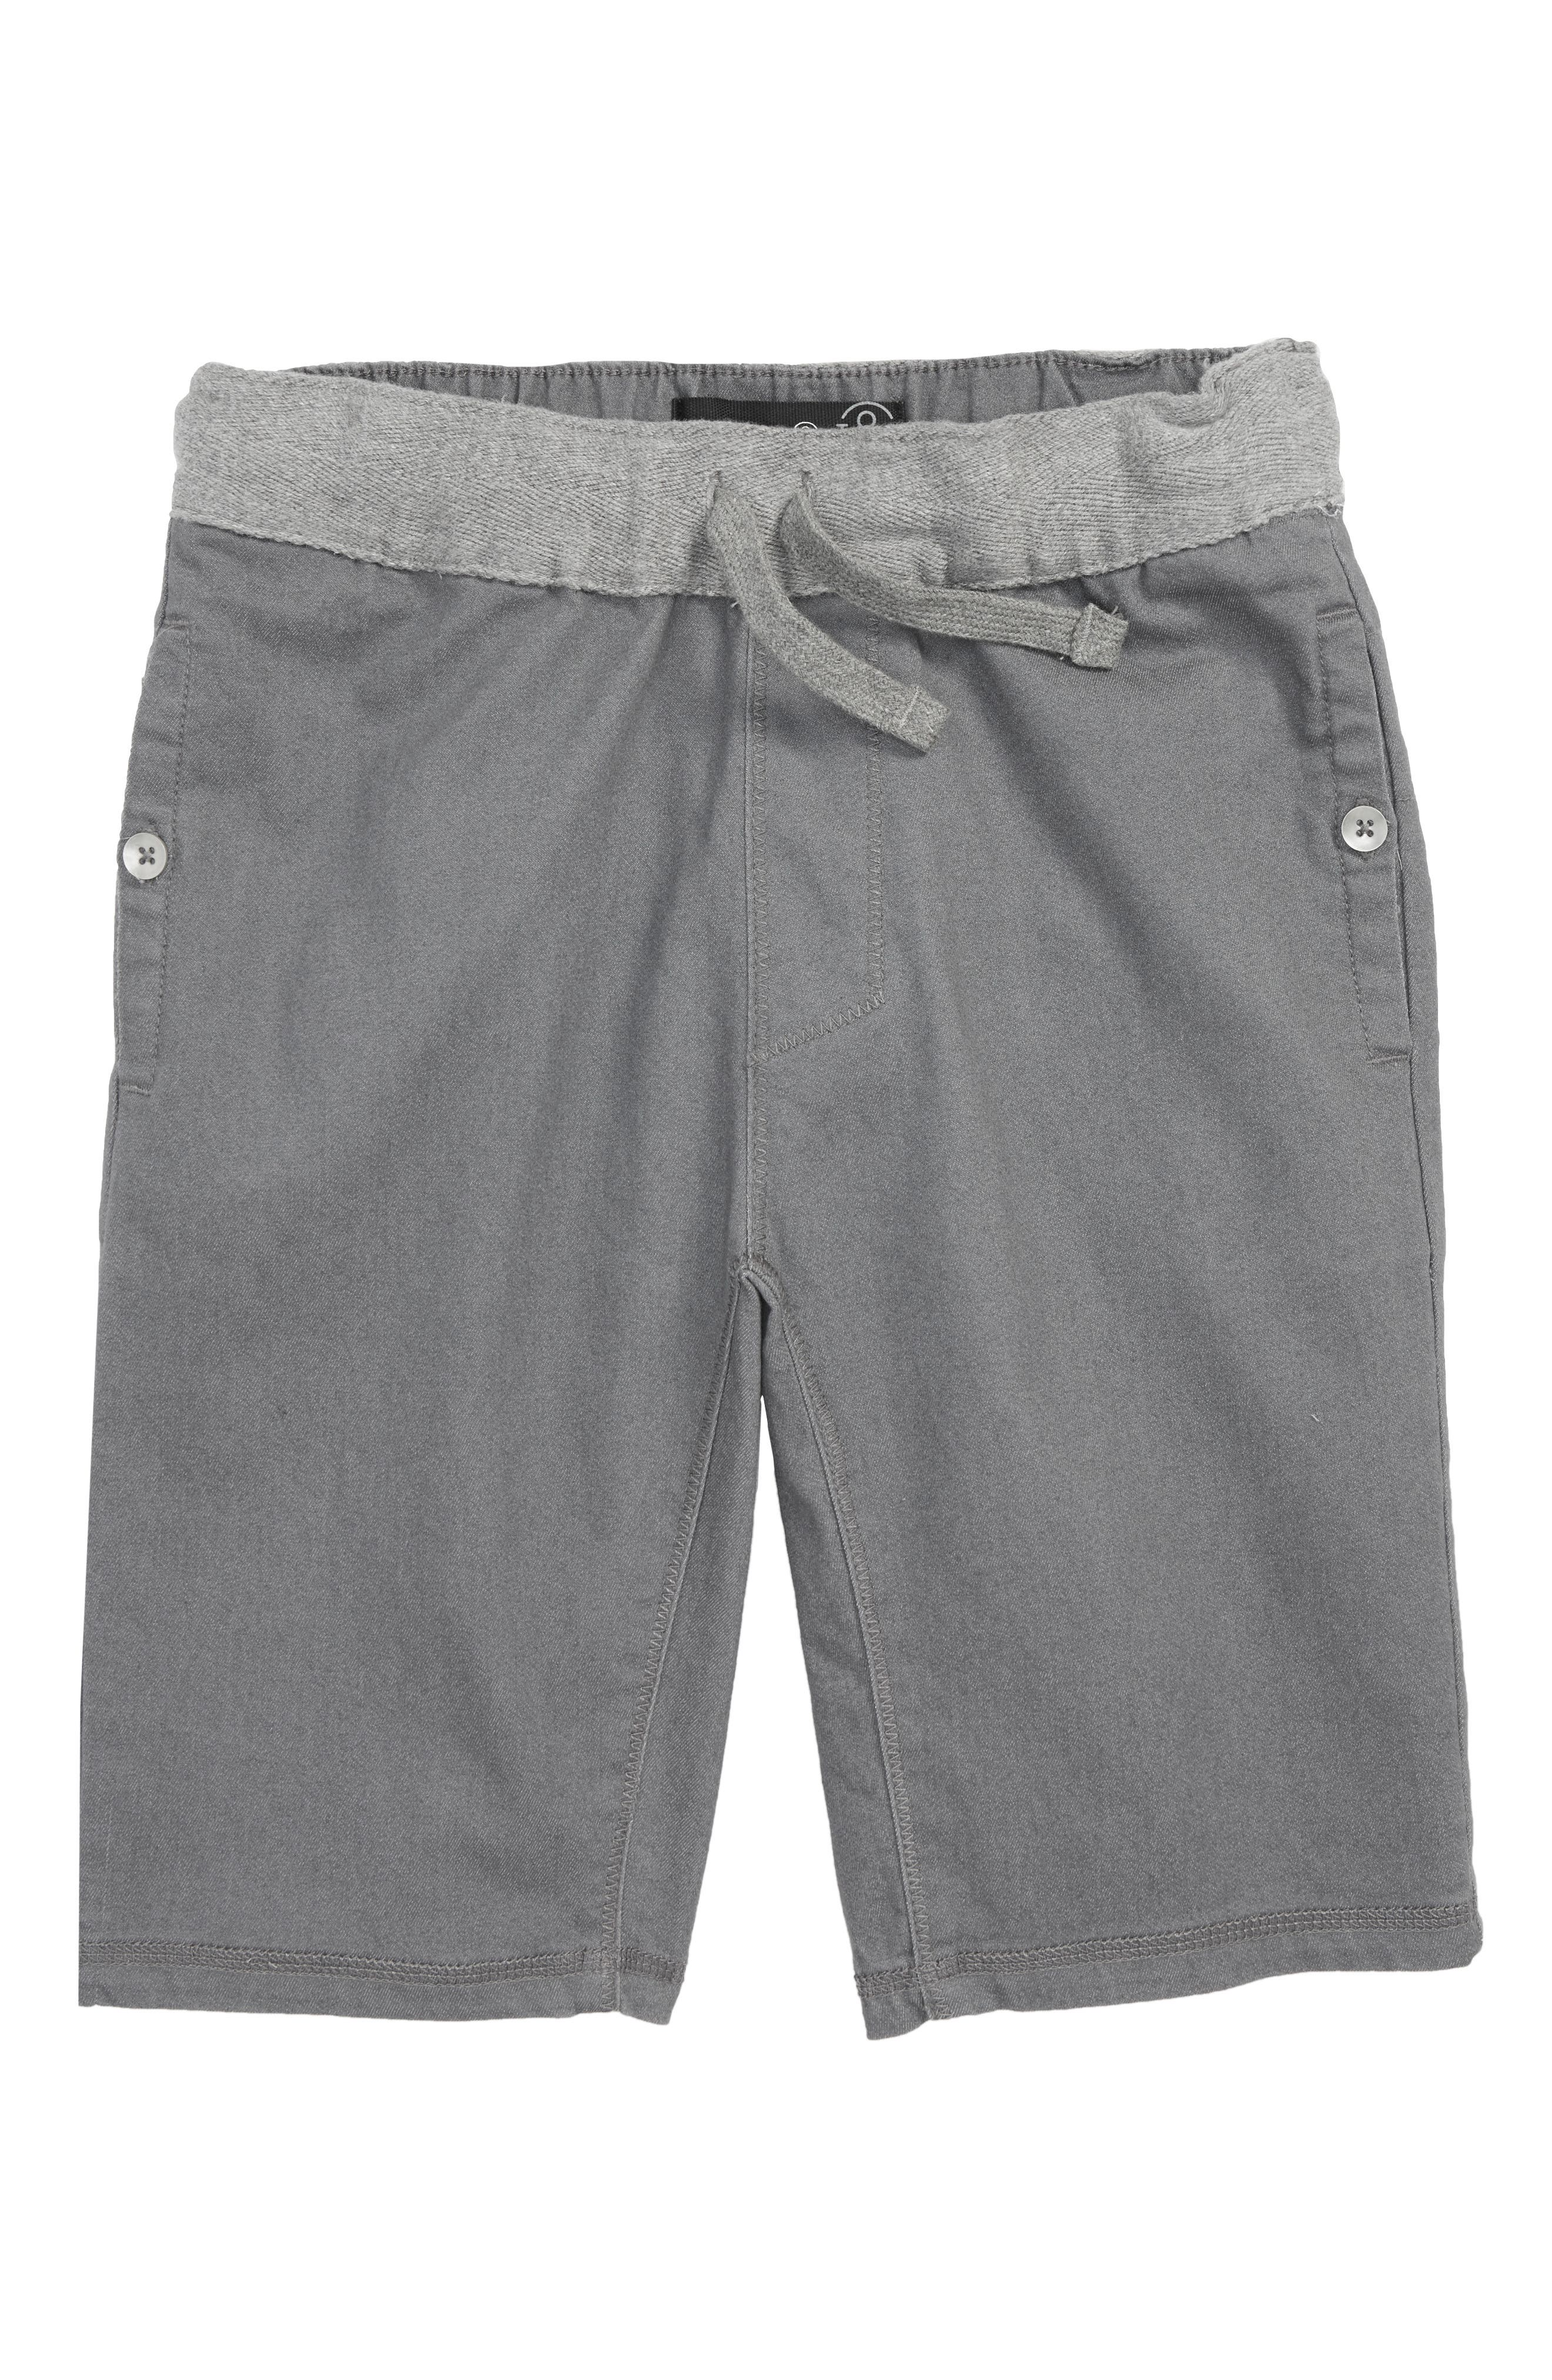 Twill Shorts,                         Main,                         color, 021